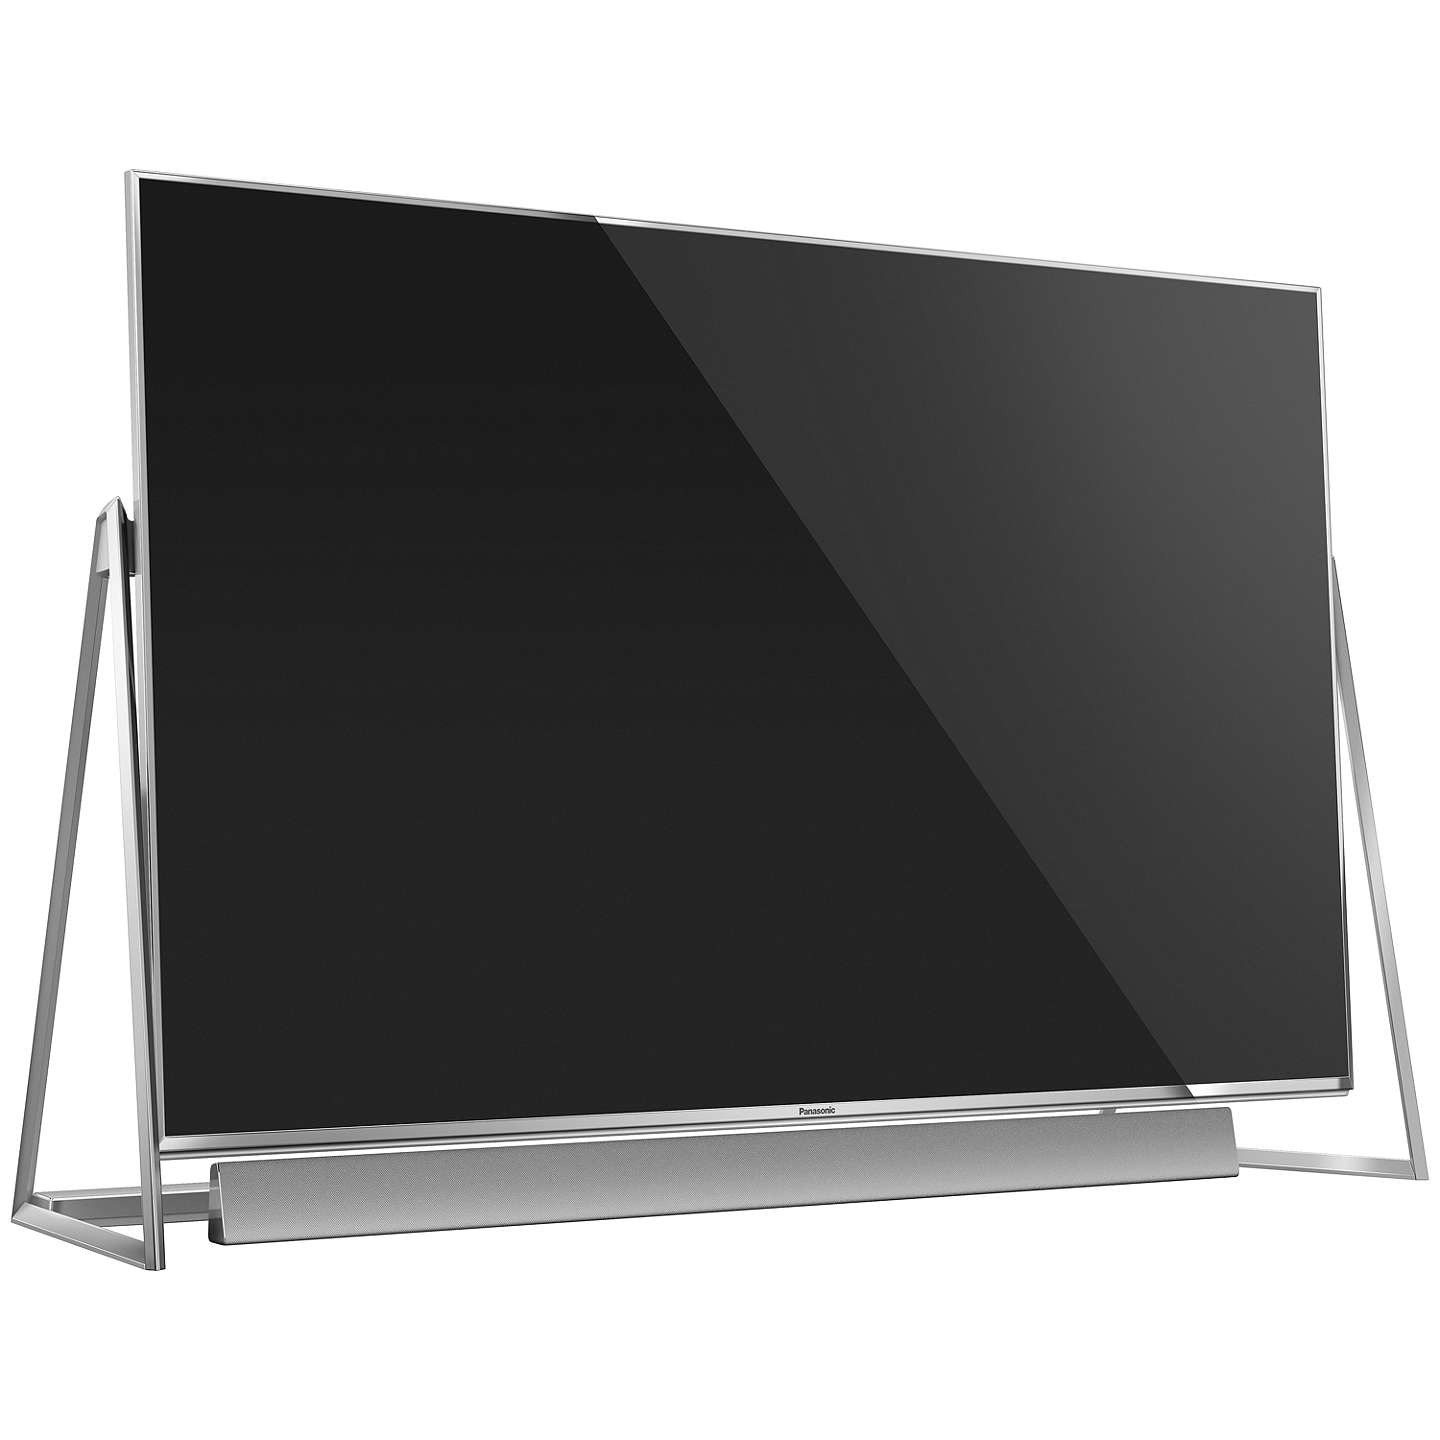 "BuyPanasonic TX-58DX802B LED HDR 4K Ultra HD 3D Smart TV, 58"" With Freeview Play/freetime, Sound Bar & Art & Interior Freestyle Design, Ultra HD Certified Online at johnlewis.com"